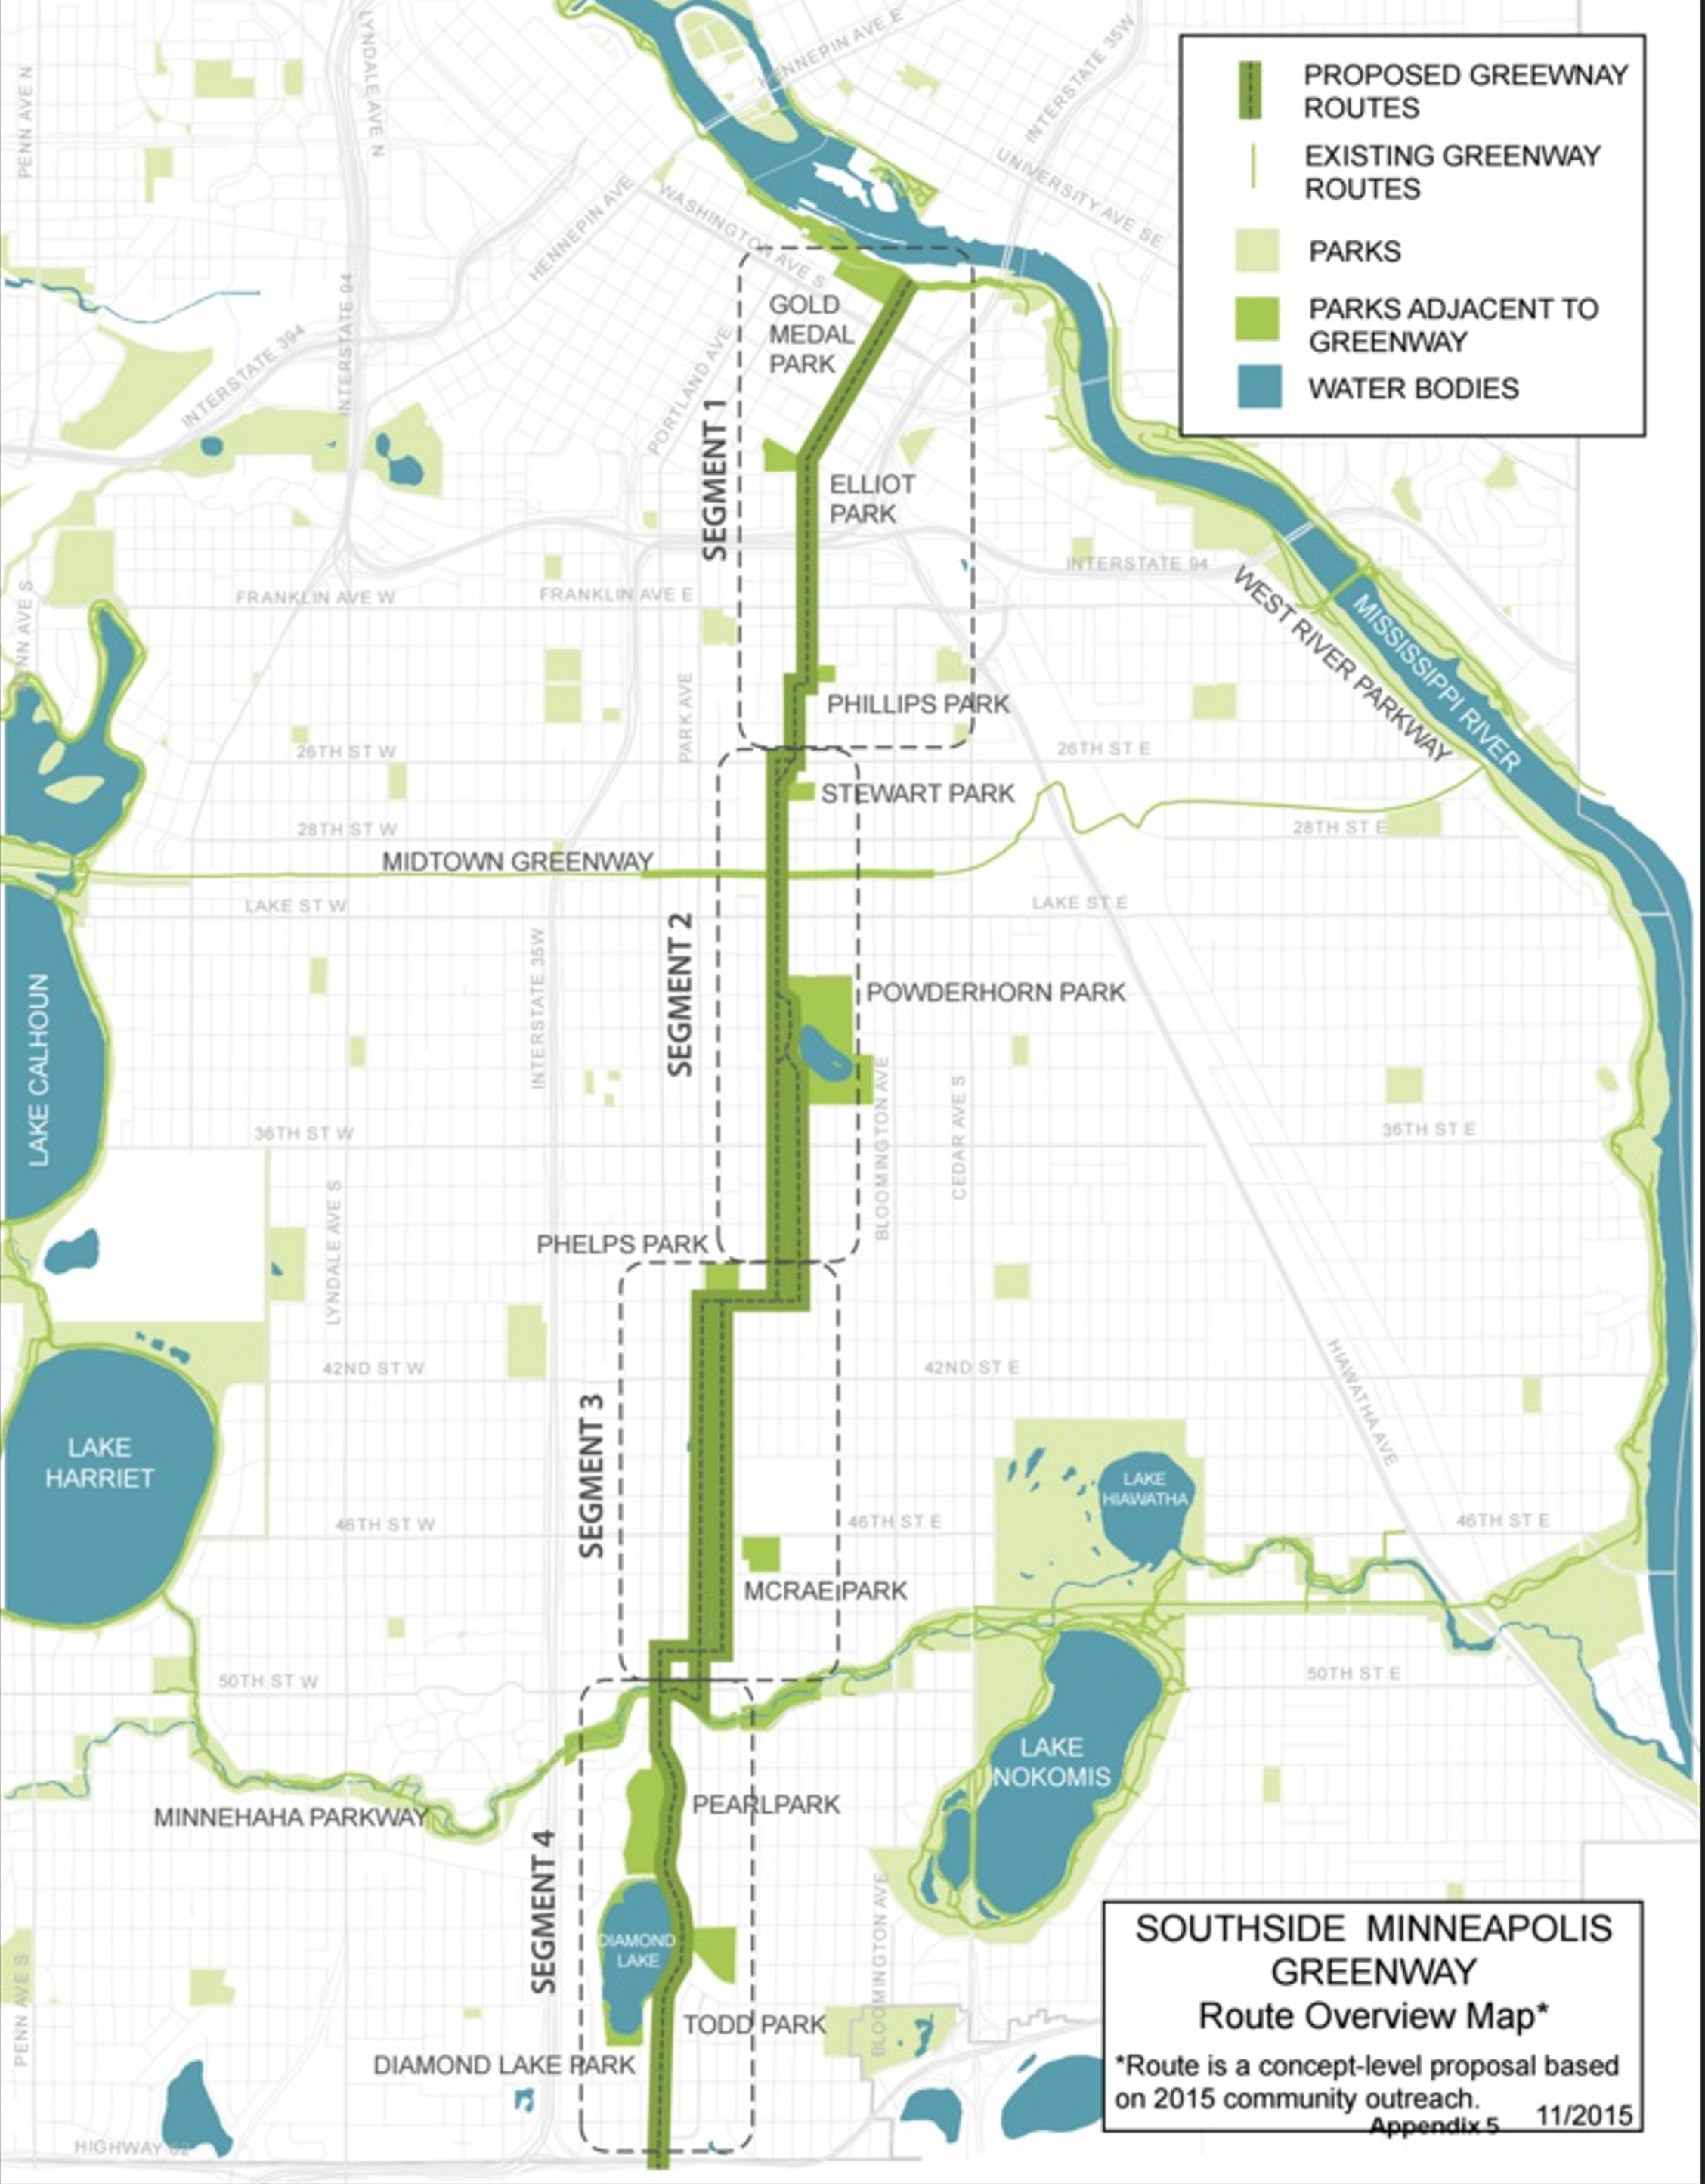 Southside Greenway Map